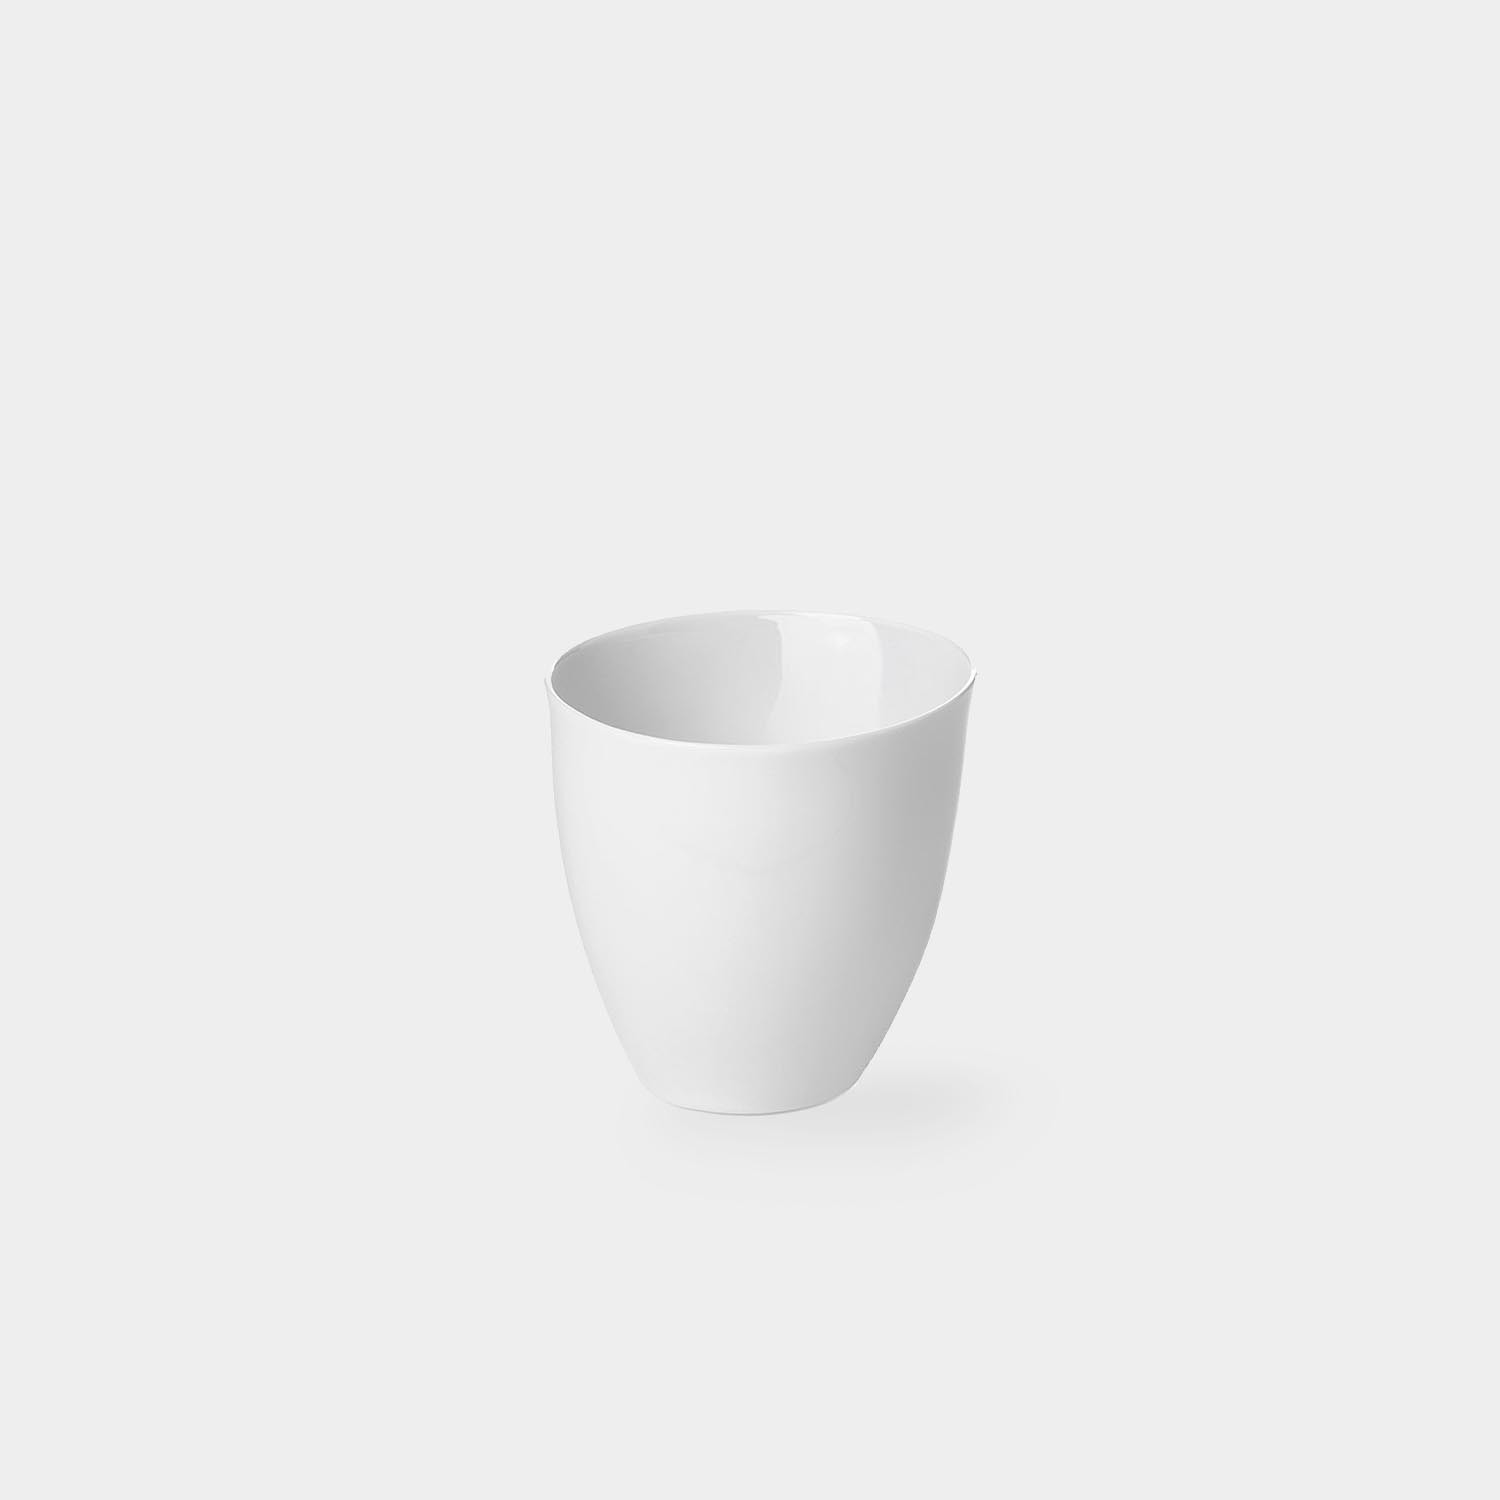 Tea Cup White Porcelain